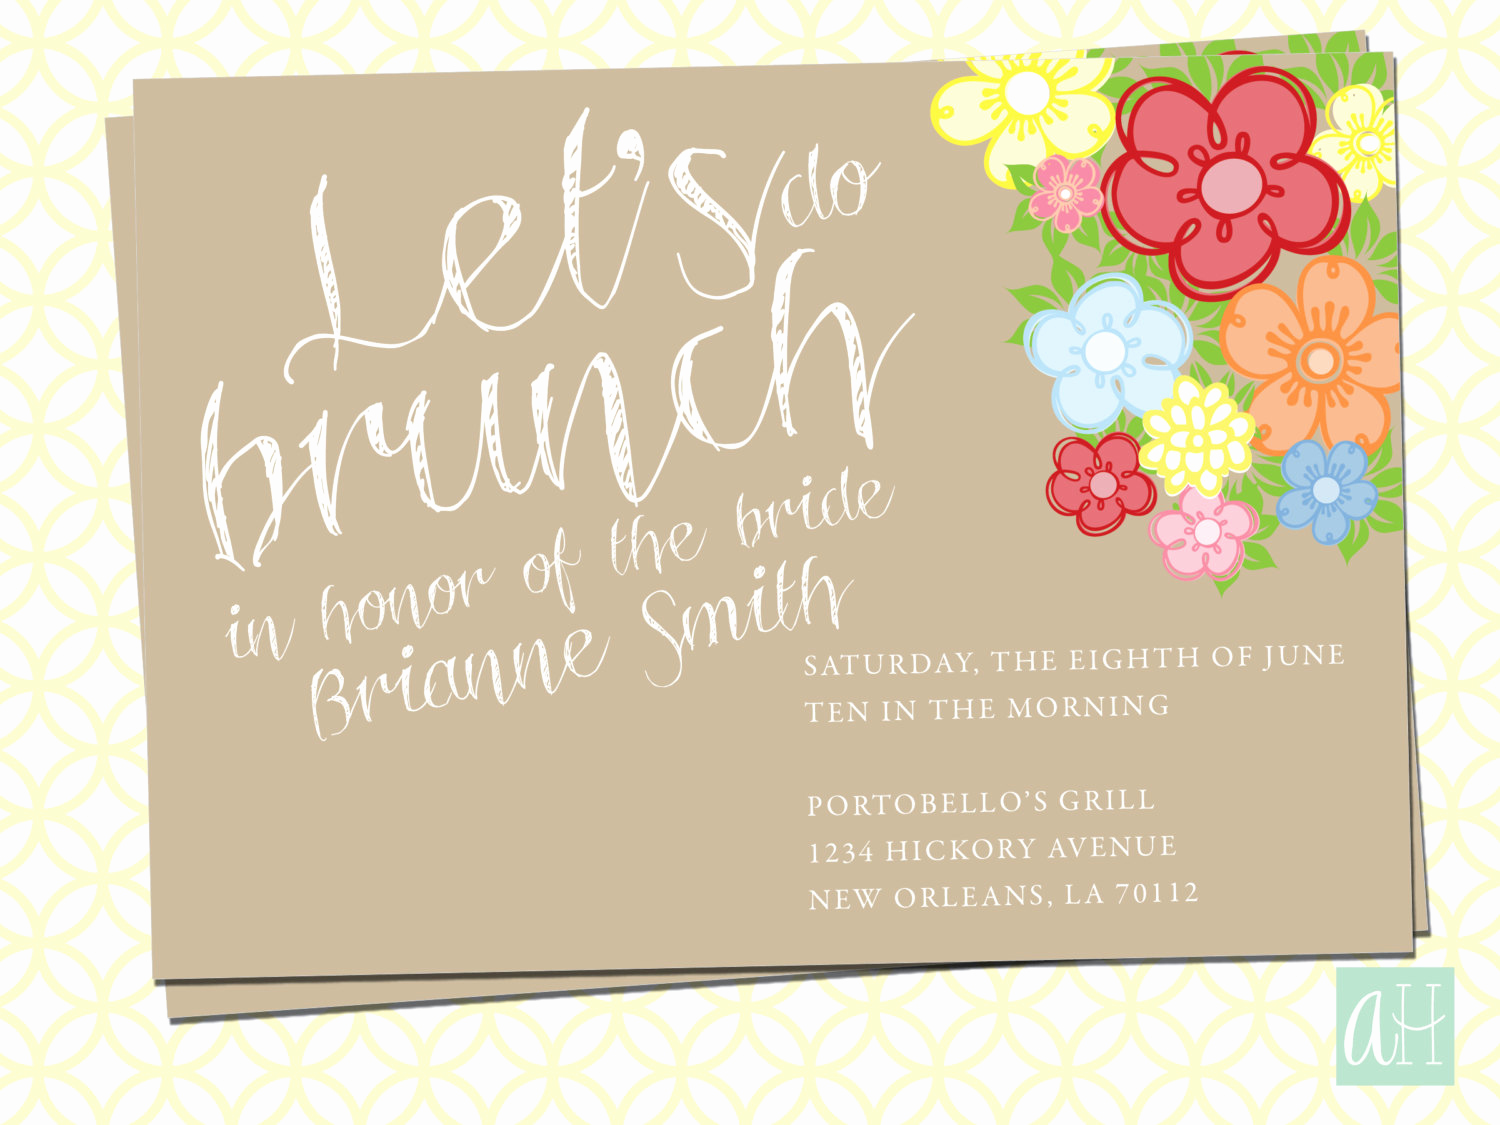 Brunch Invitation Wording Examples Awesome Printable Bridal Brunch Invitation Let S Do Brunch